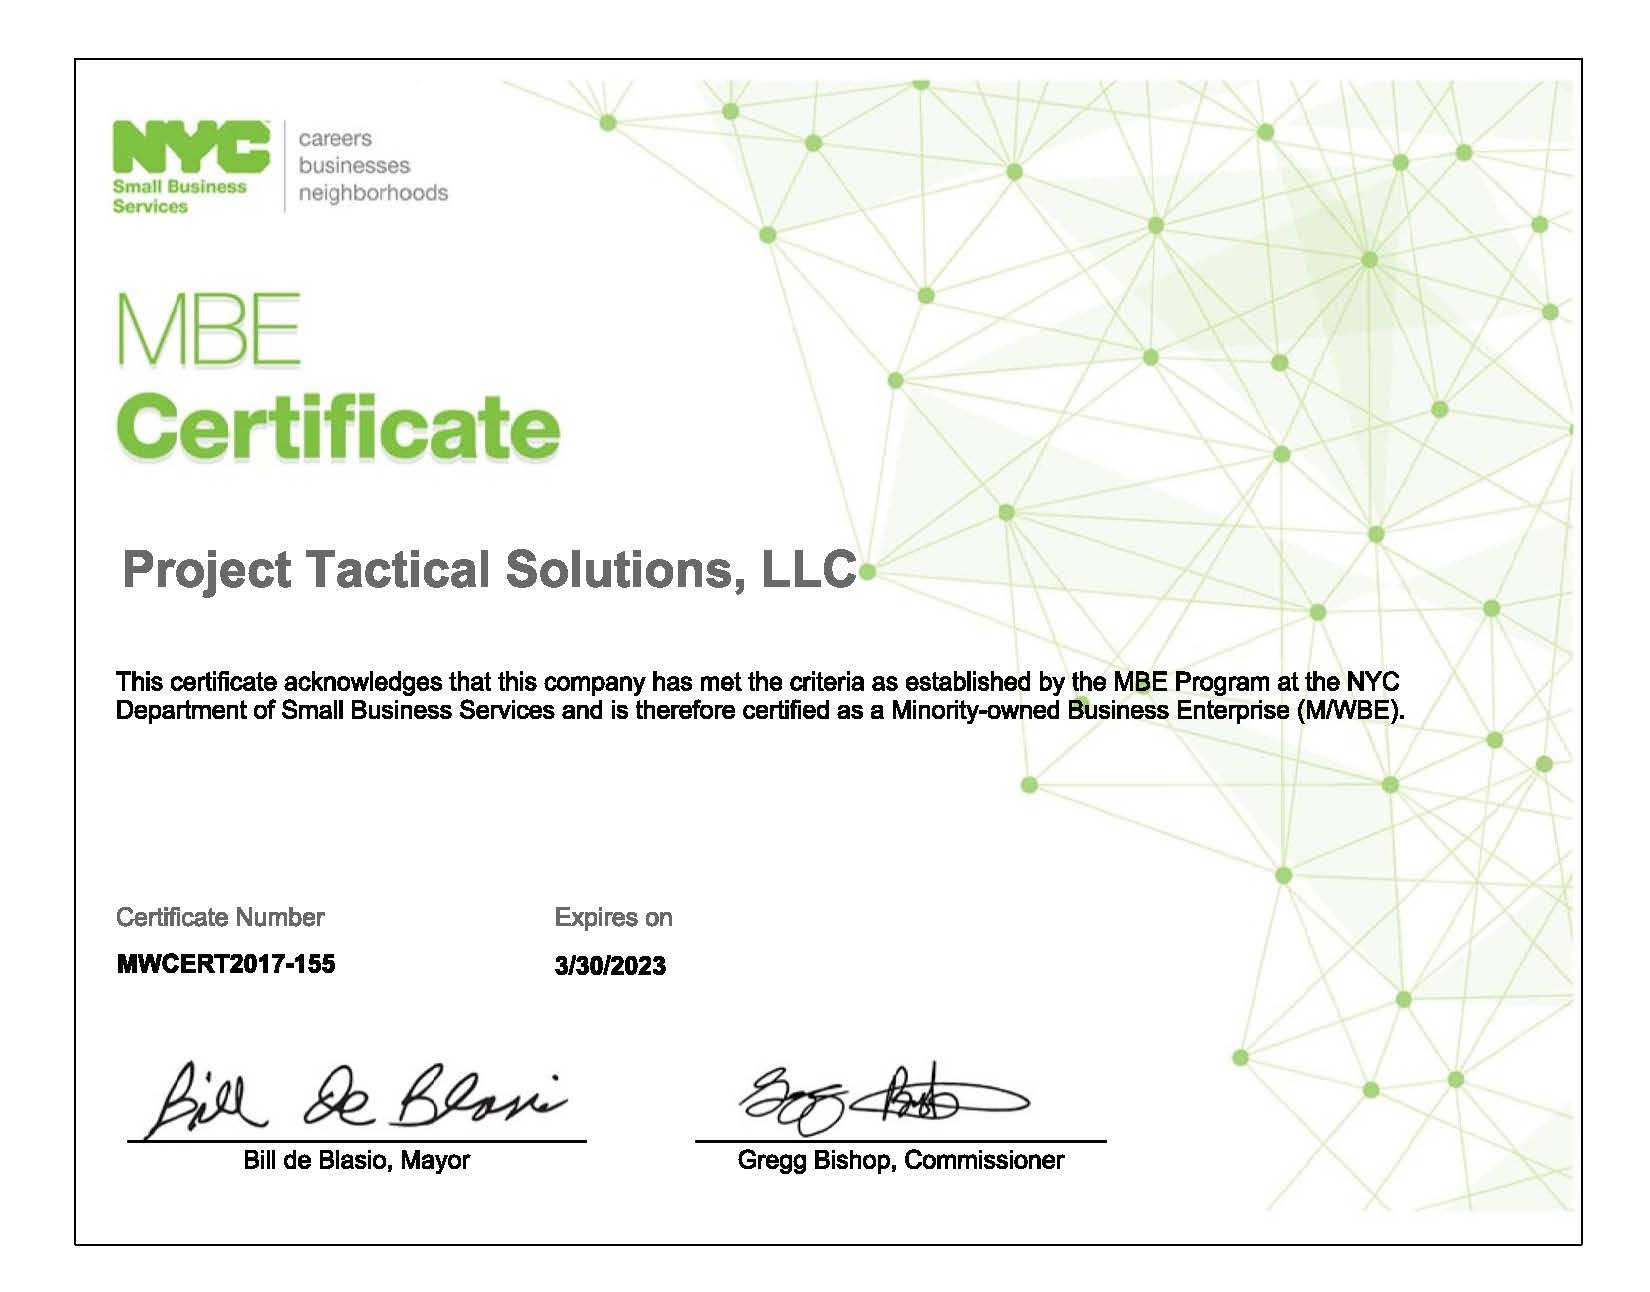 NYC MBE Certificate for PTS expires 3.30.23.jpg